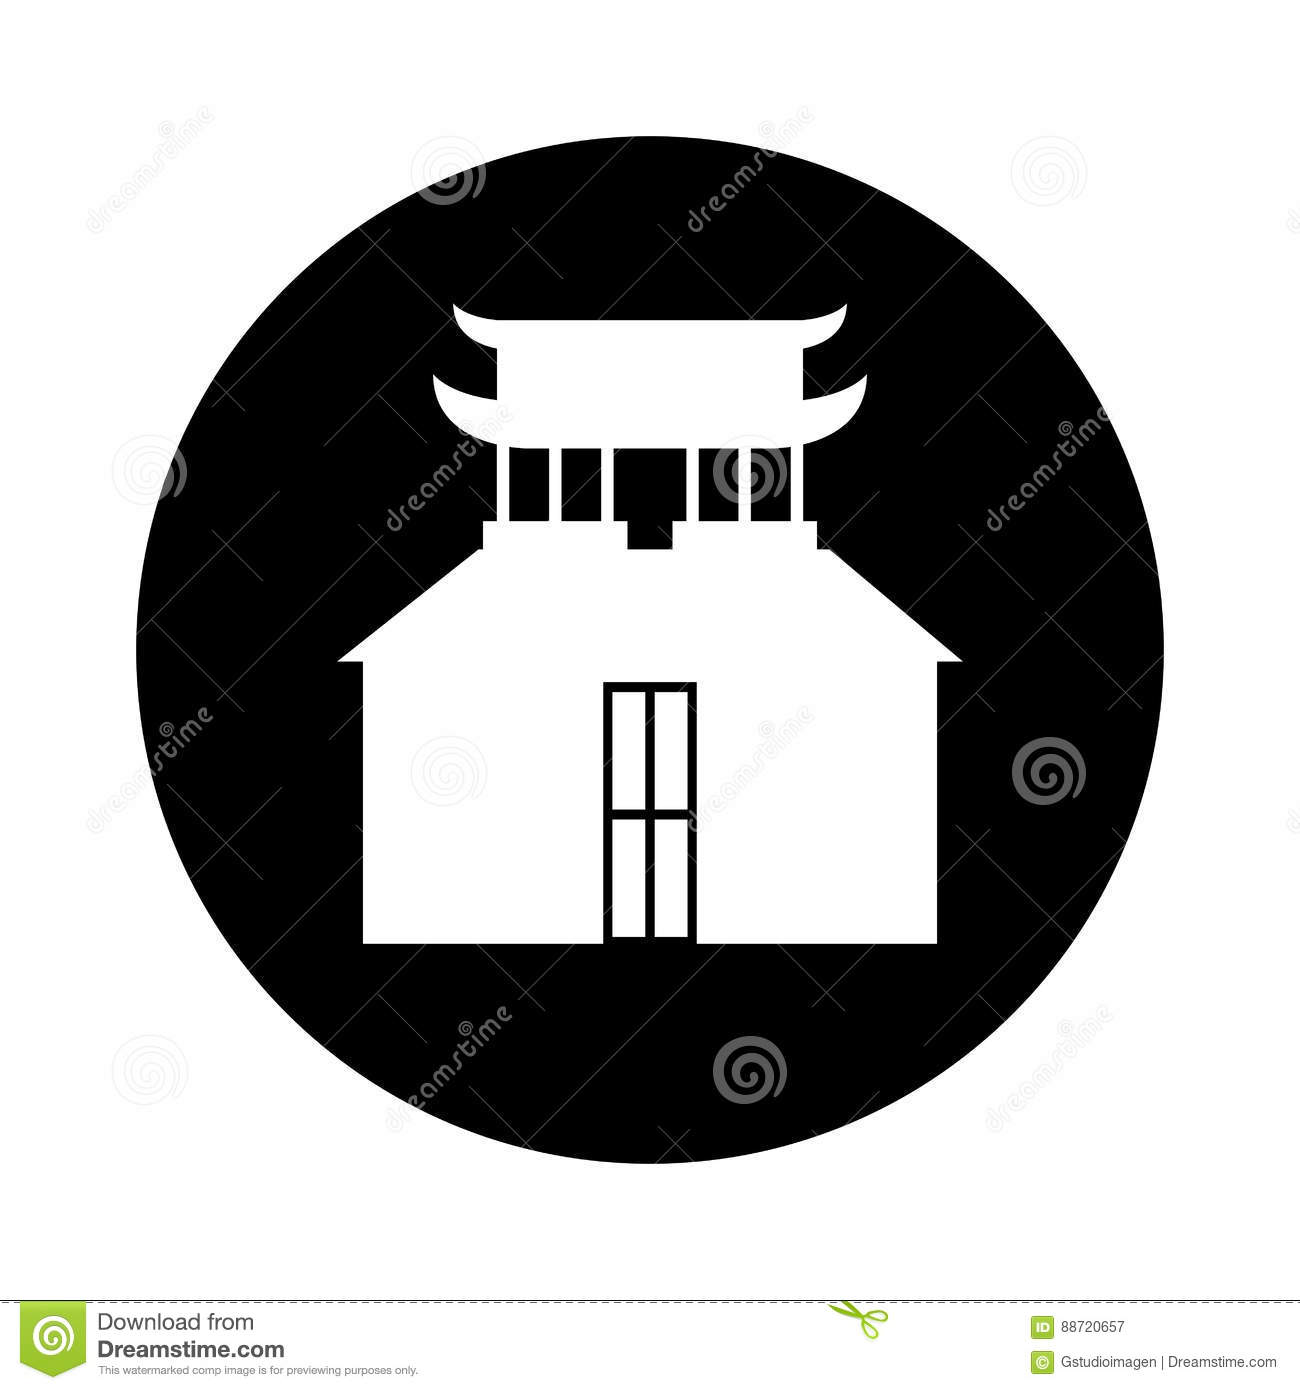 asian building castle icon stock vector - image: 88720657